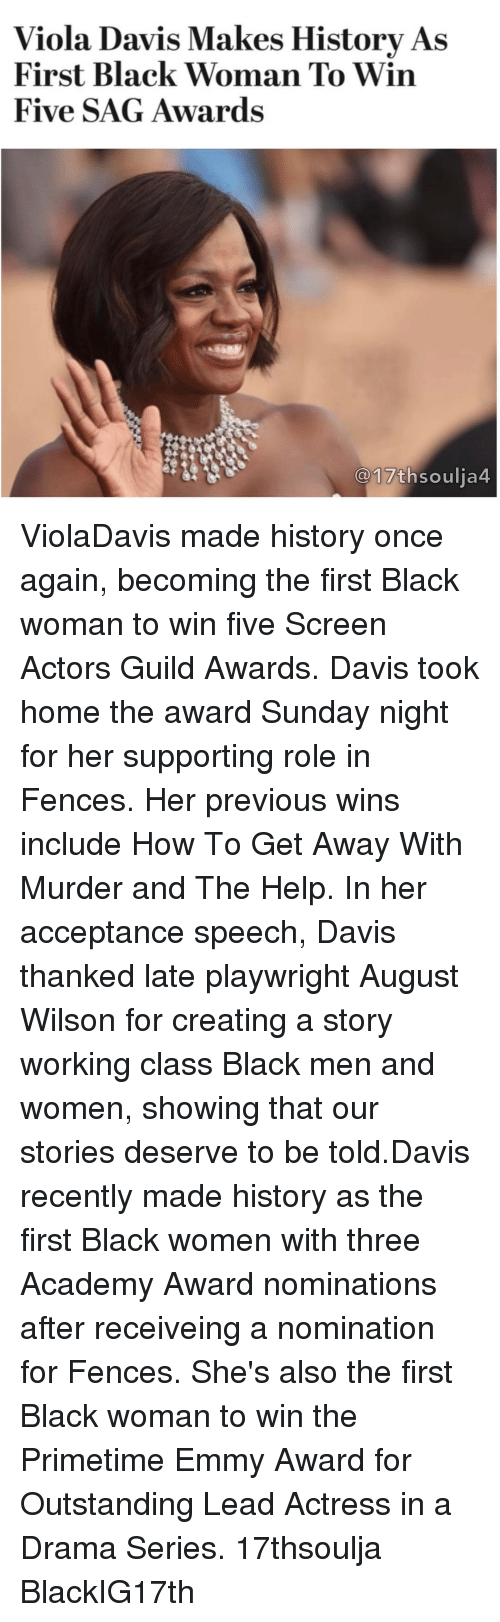 guild: Viola Davis Makes History As  First Black Woman To Win  Five SAG Awards  17th soulia4 ViolaDavis made history once again, becoming the first Black woman to win five Screen Actors Guild Awards. Davis took home the award Sunday night for her supporting role in Fences. Her previous wins include How To Get Away With Murder and The Help. In her acceptance speech, Davis thanked late playwright August Wilson for creating a story working class Black men and women, showing that our stories deserve to be told.Davis recently made history as the first Black women with three Academy Award nominations after receiveing a nomination for Fences. She's also the first Black woman to win the Primetime Emmy Award for Outstanding Lead Actress in a Drama Series. 17thsoulja BlackIG17th